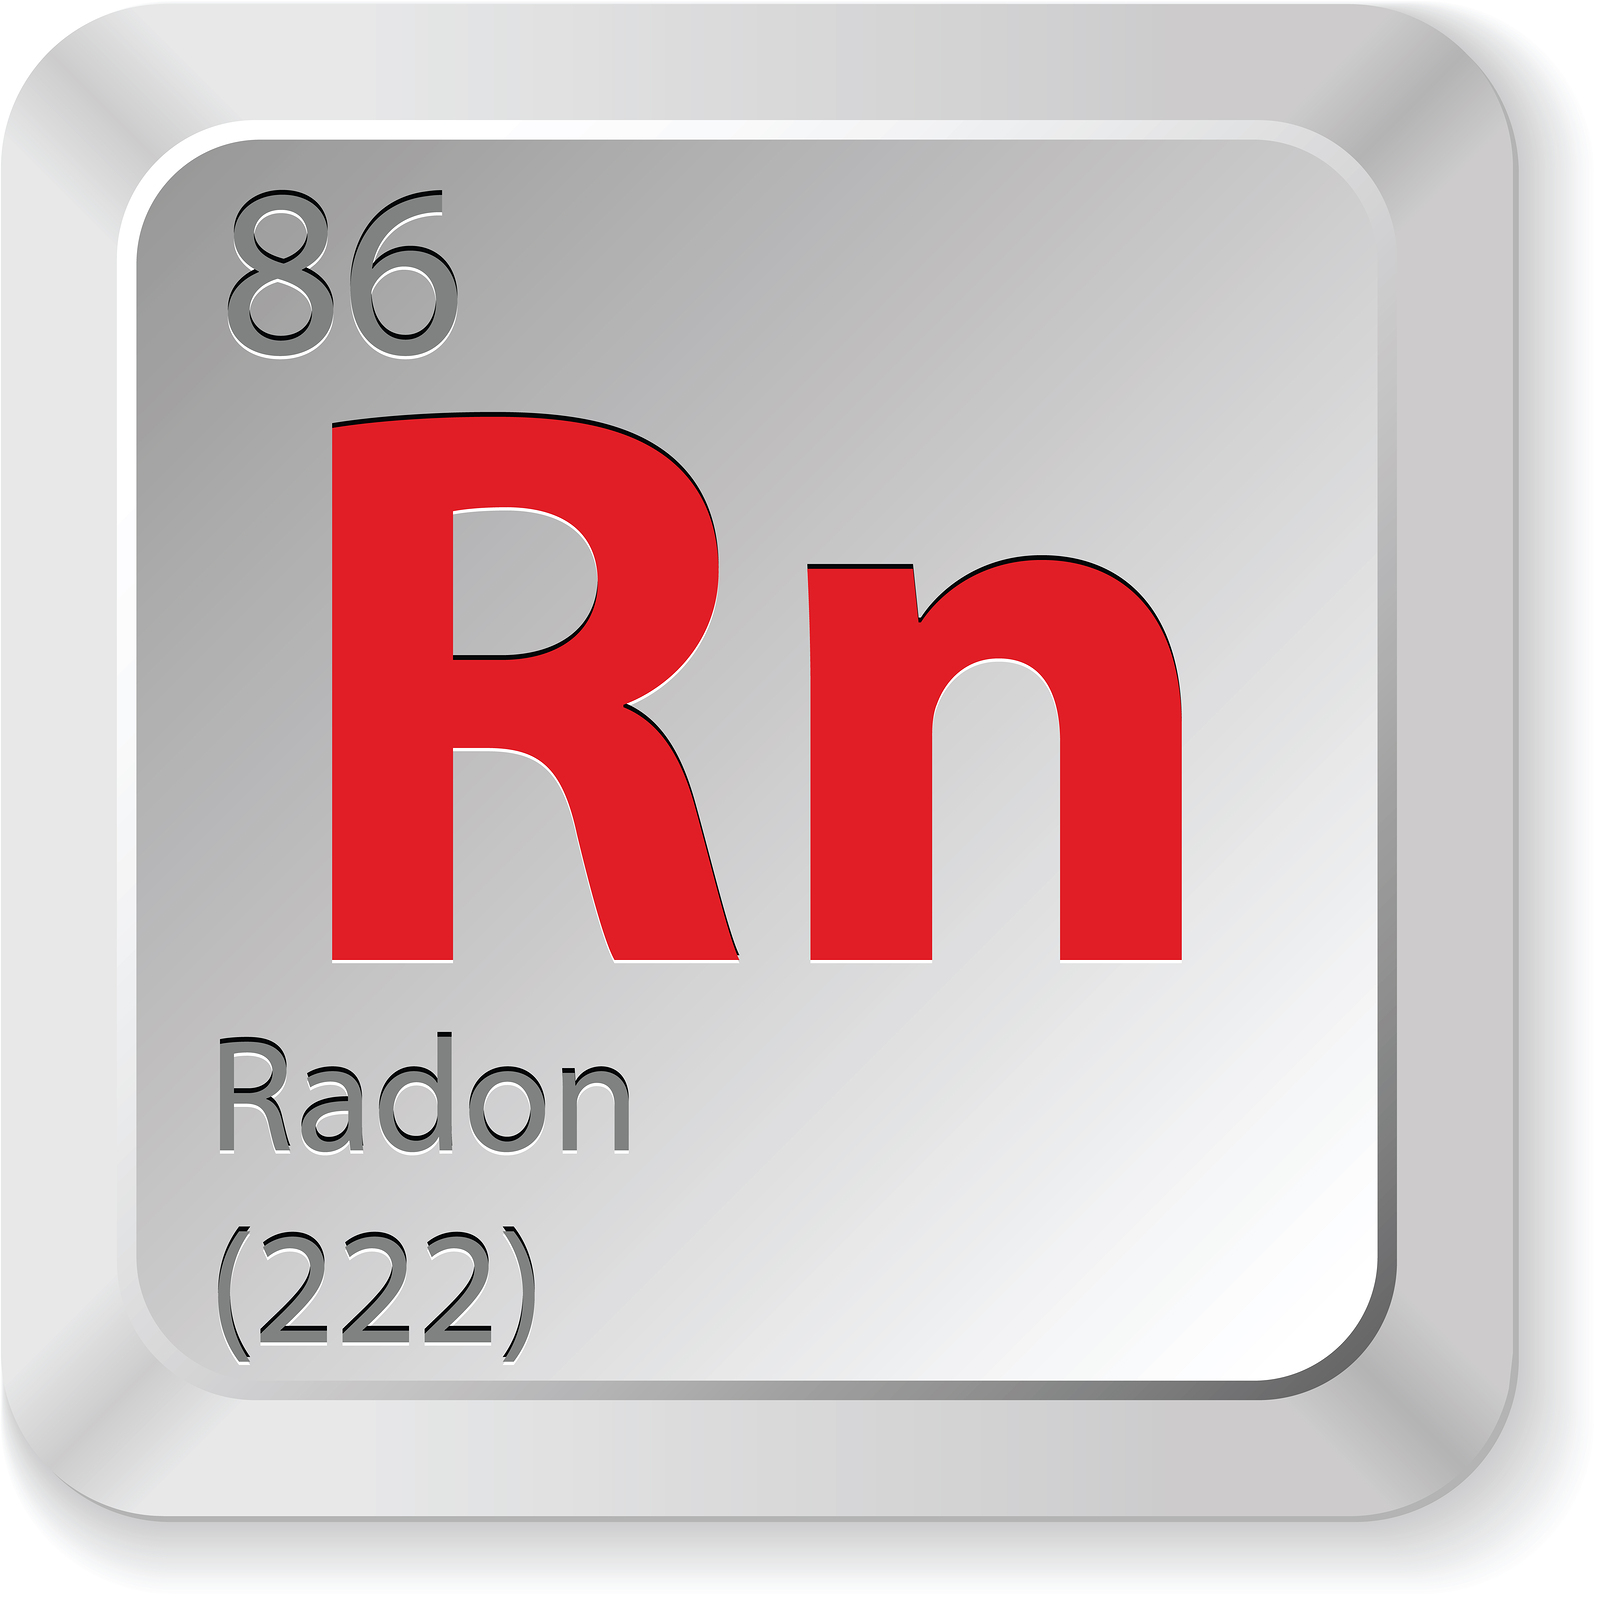 Image of radon periodic table number